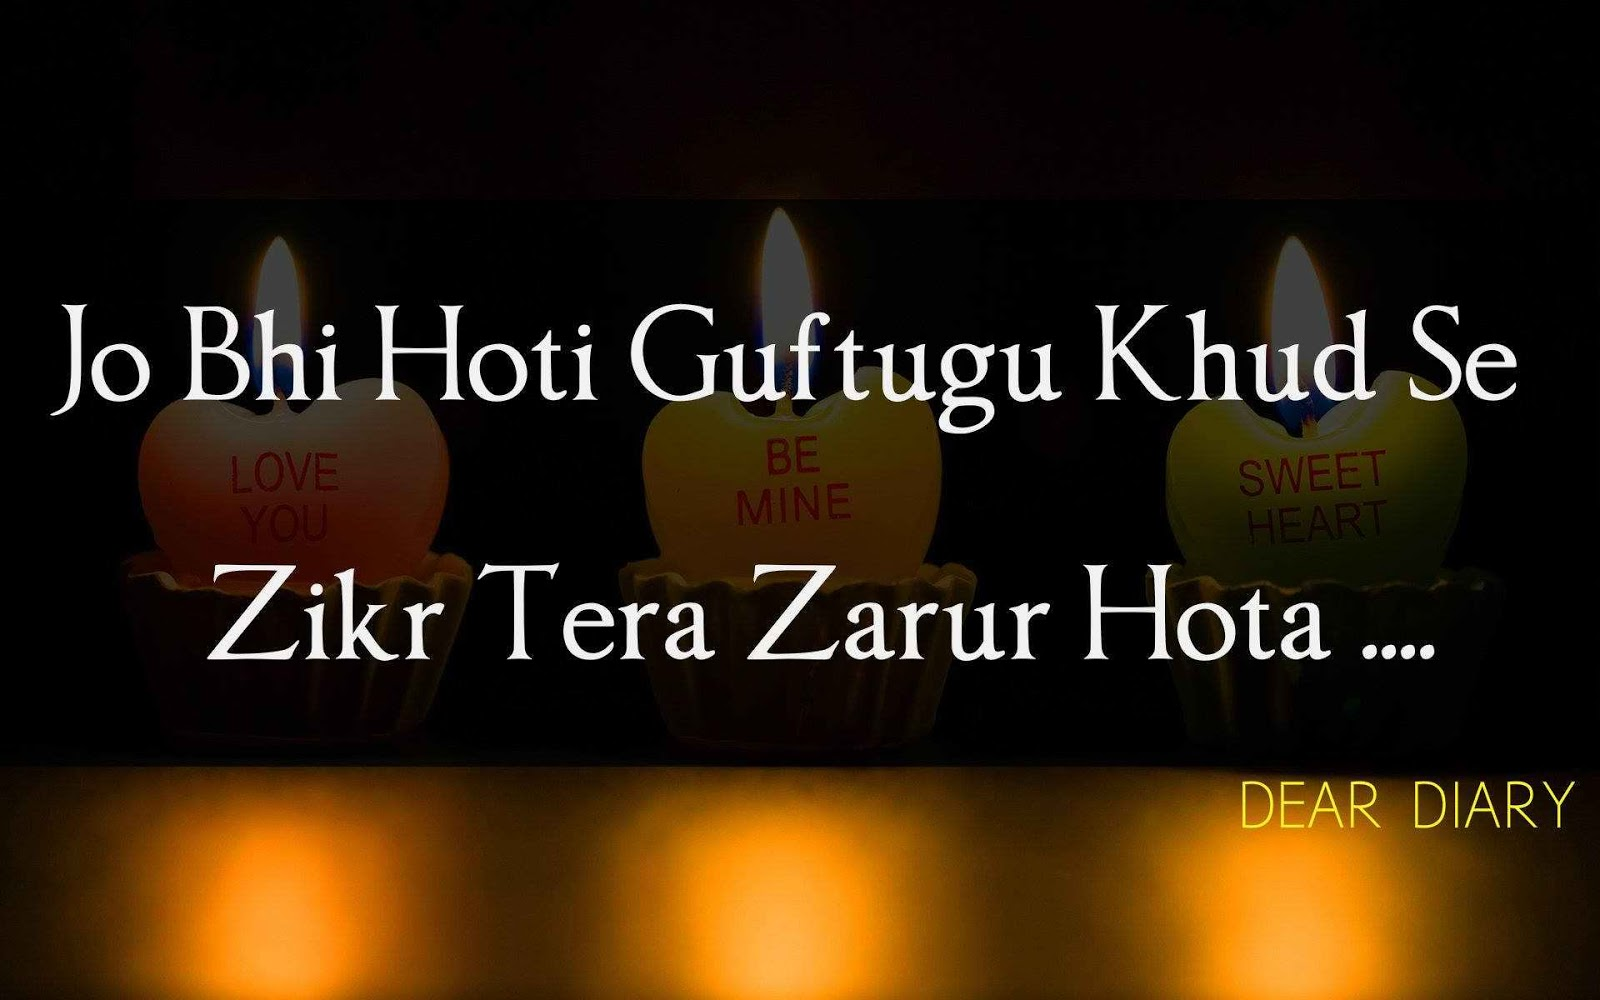 Sad Quotes About Love Dear Diary Sad Quotes & Shayari With Images  Diary Love Quotes